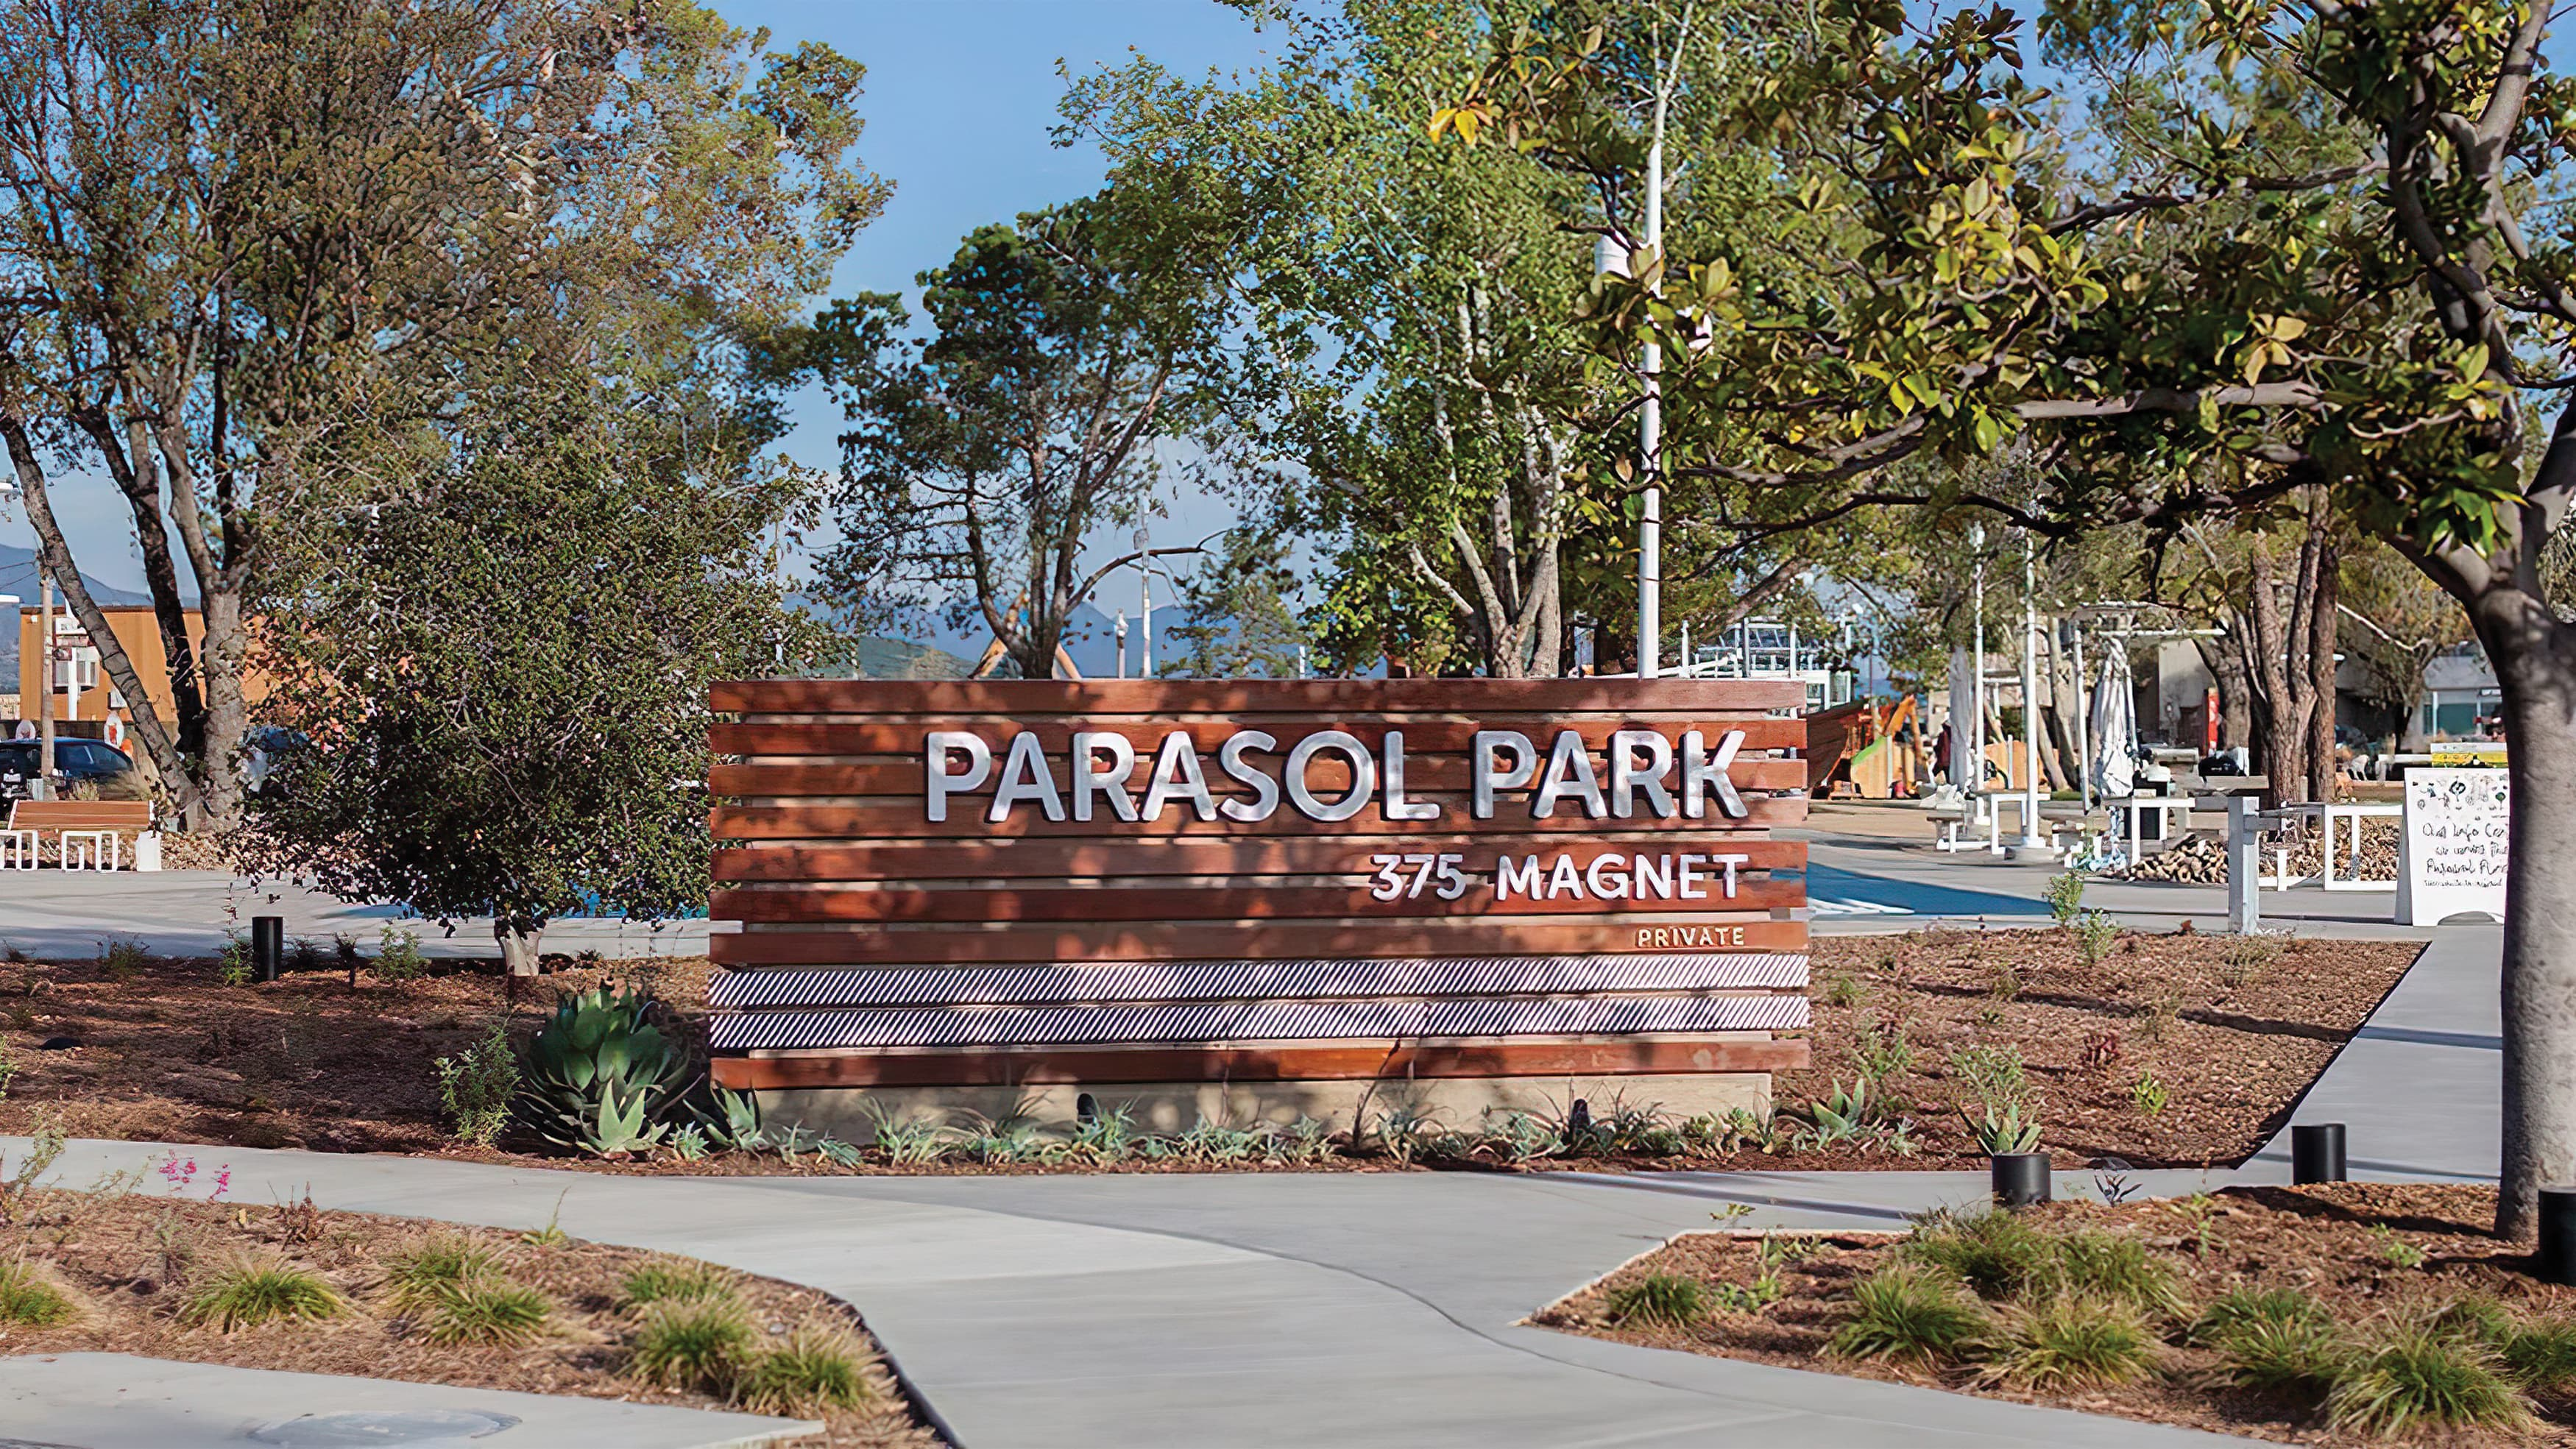 Parasol Park horizontal, wooden-slat sign identity integrated into the landscape